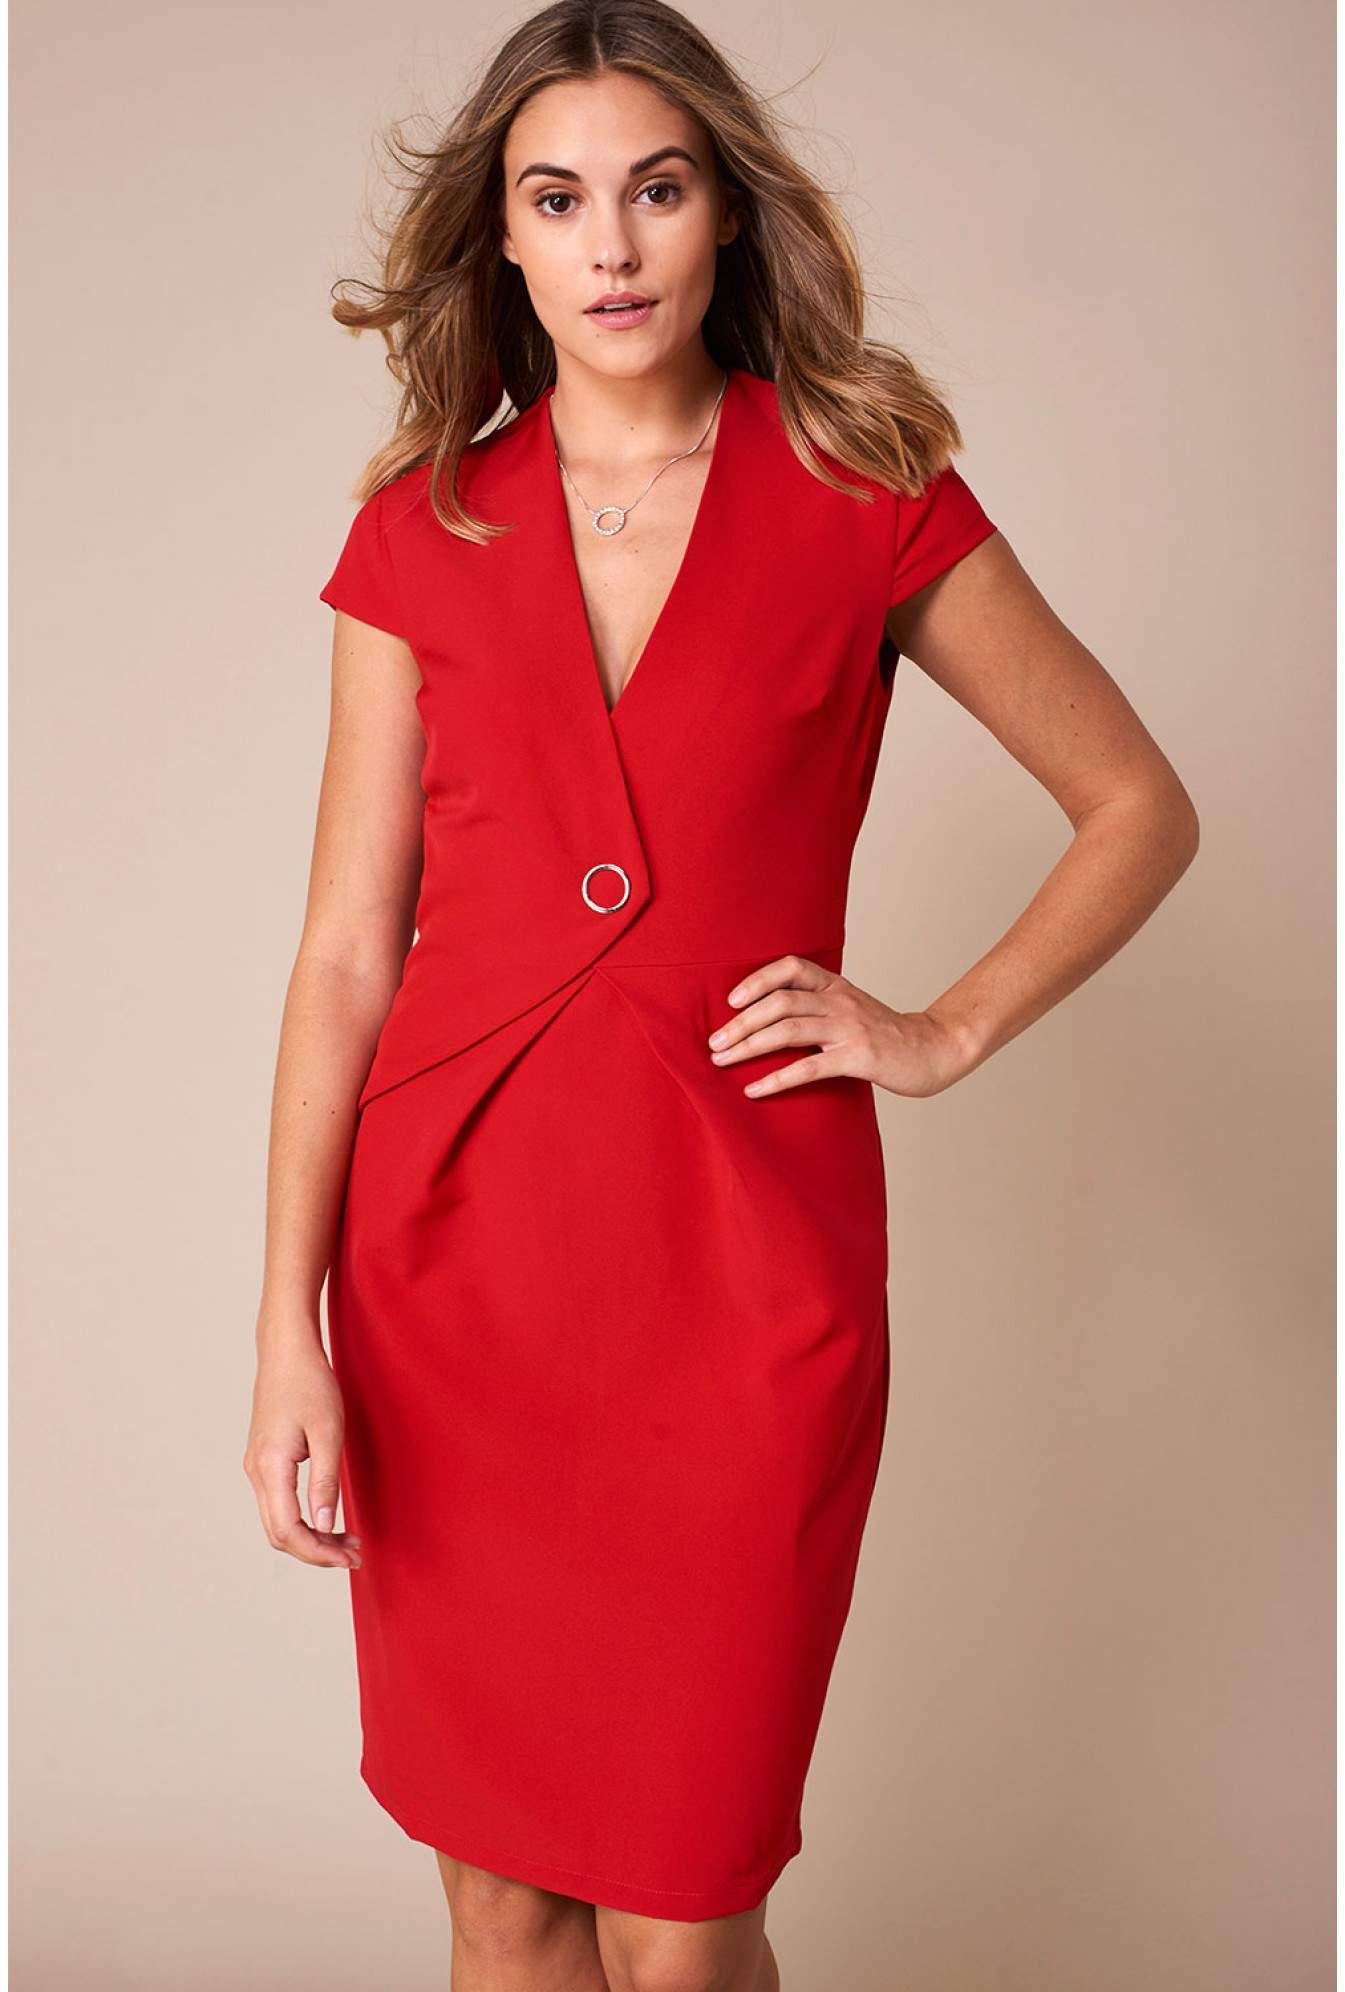 25cdd65817 Marc Angelo Reese Cap Sleeve Pencil Dress in Red